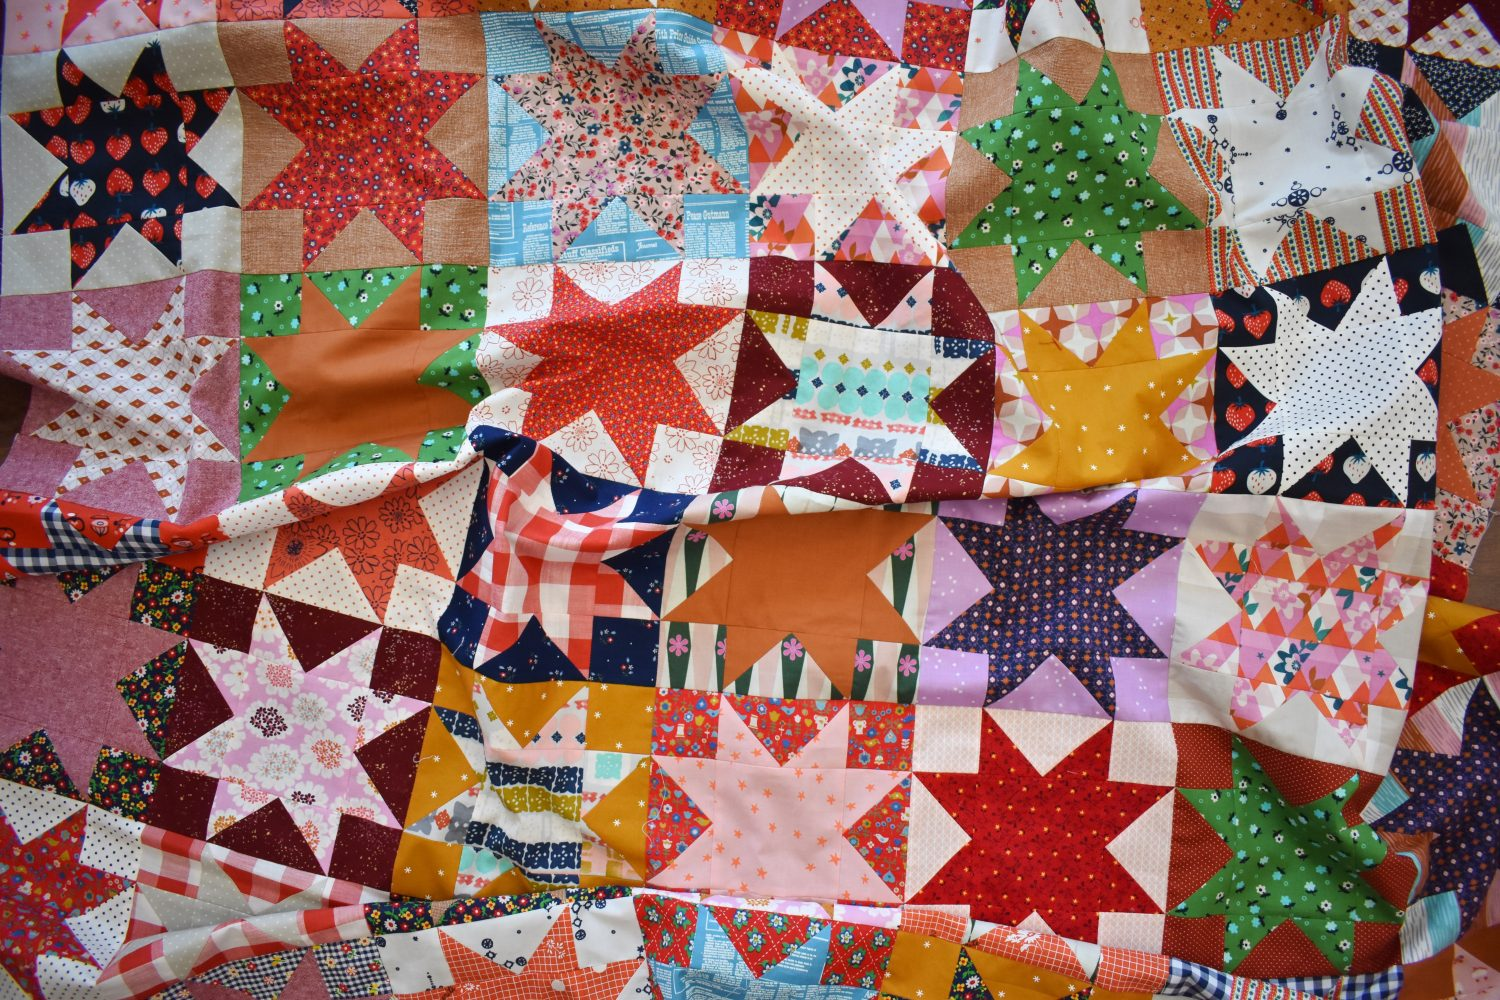 Using over 40 fabrics to create this scrappy star quilt top